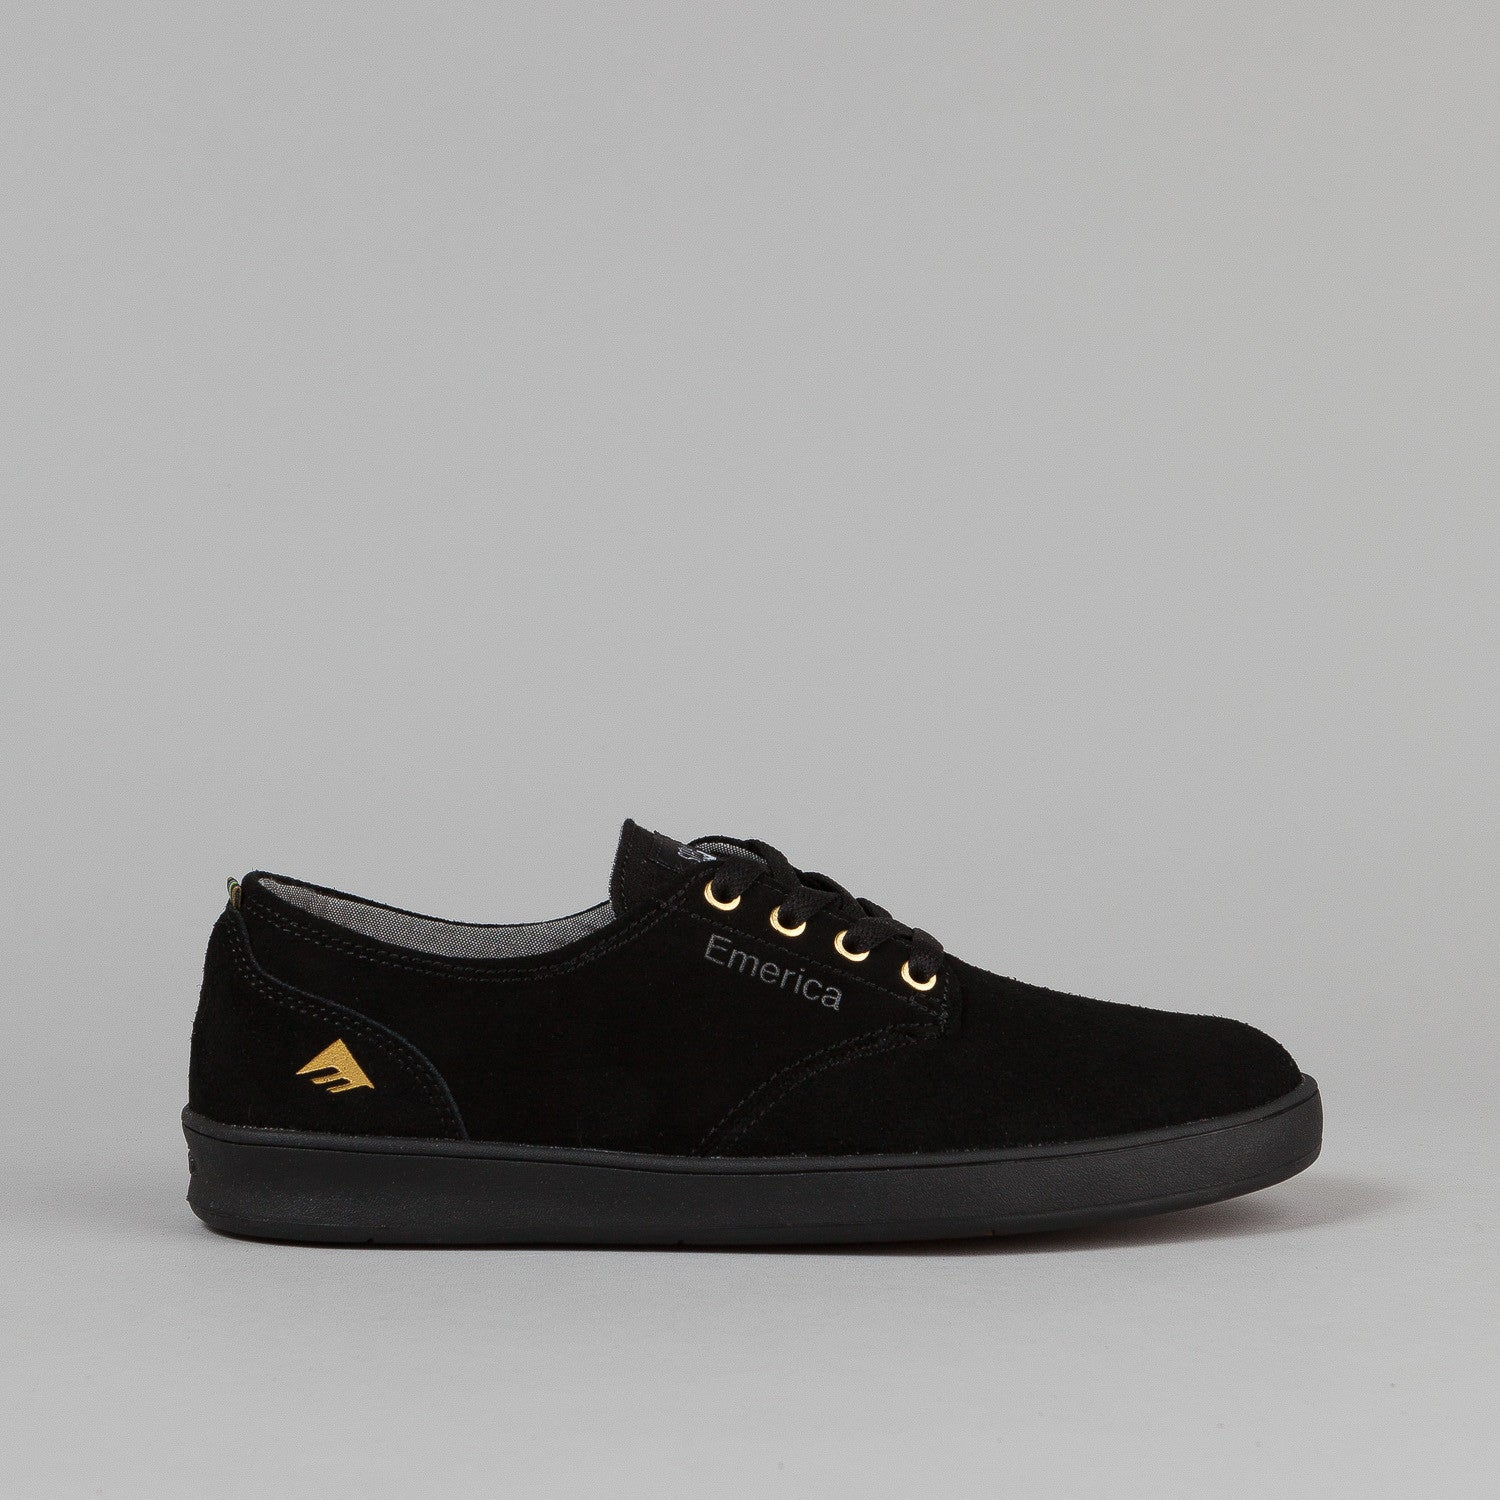 Emerica The Romero Laced X Stay Flared Shoes